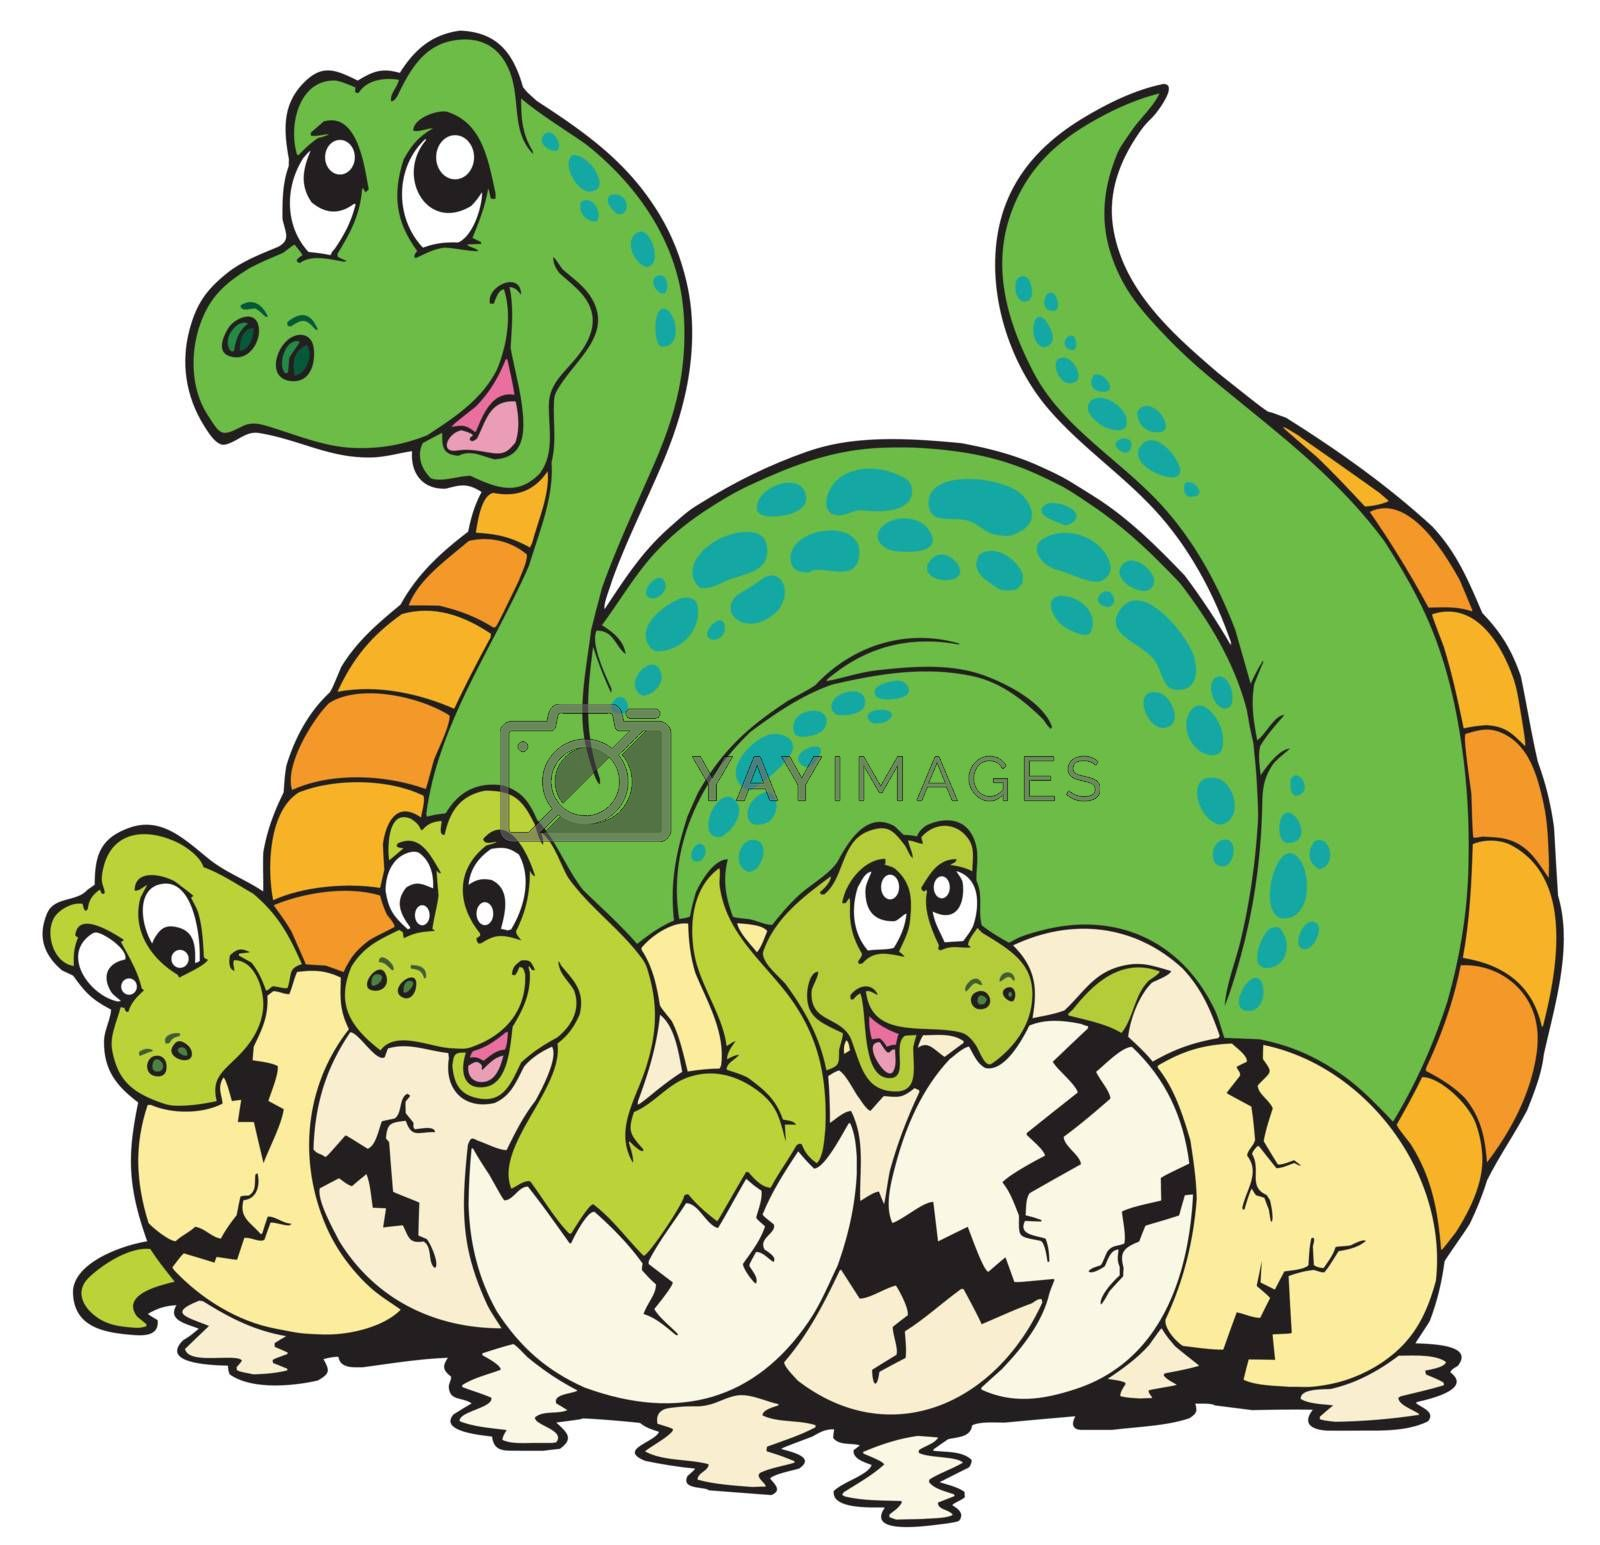 Dinosaur mom with cute babies - vector illustration.